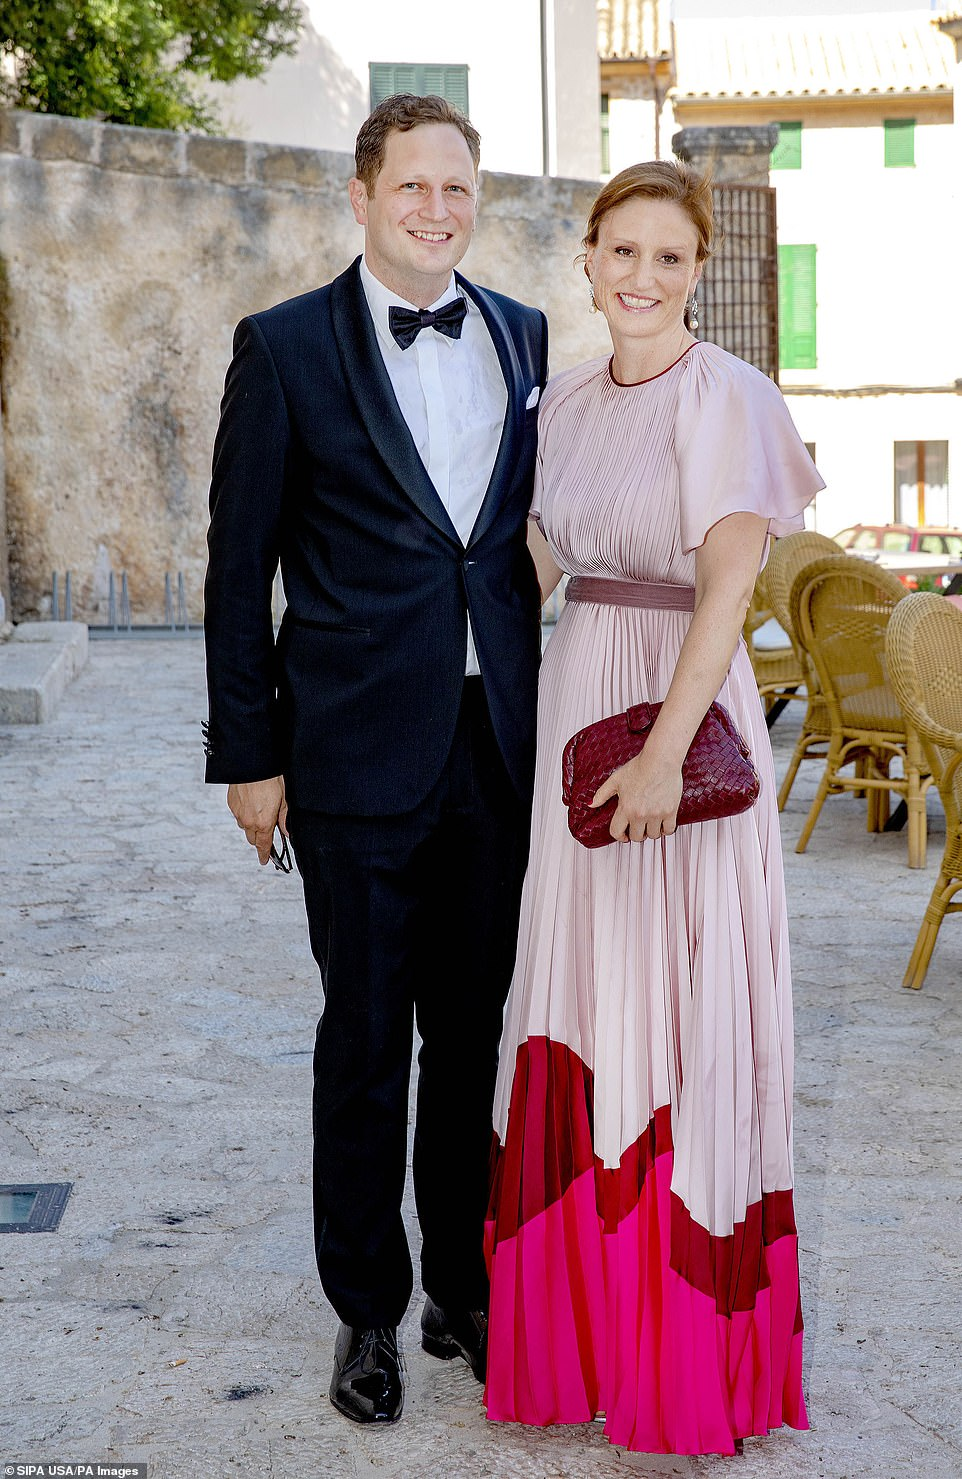 Prince Georg Friedrich Of Prussia Who Is The Current Head Of The Hohenzollern Family And His Wife Sophie Princess Of Prussia Prussia Civil Ceremony Royal